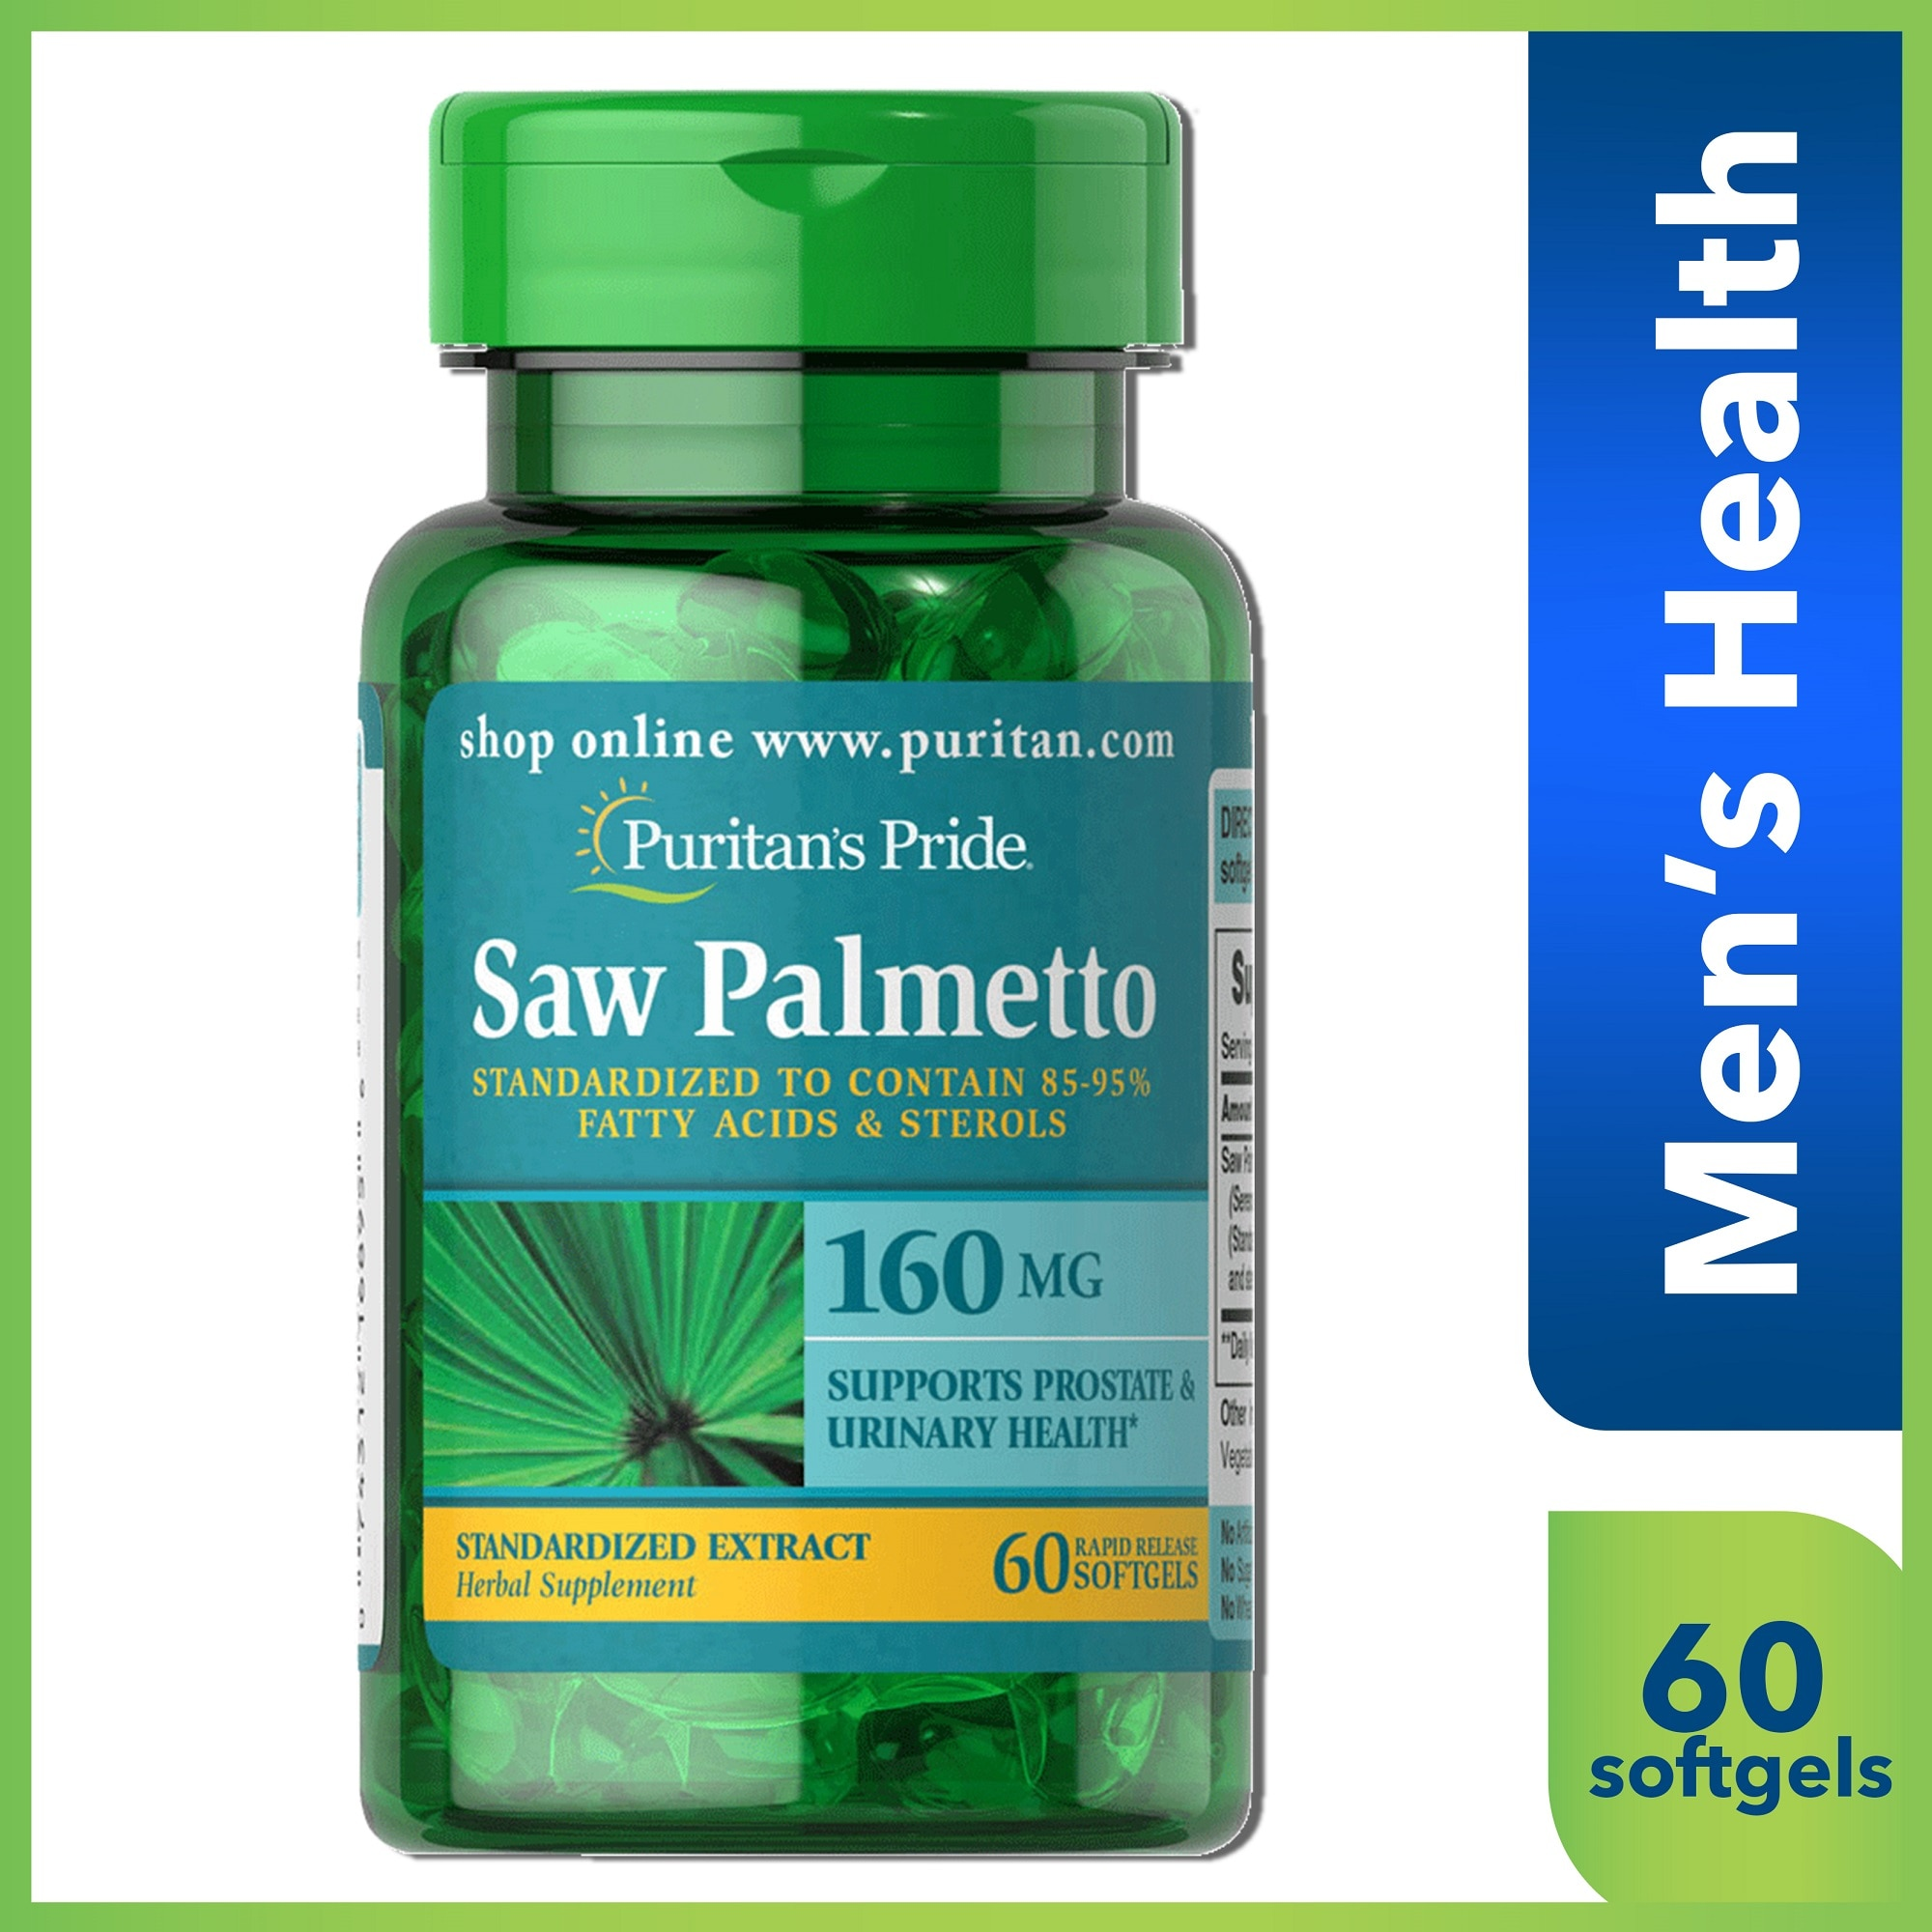 Saw Palmetto Extract 160 mg 60 Softgels